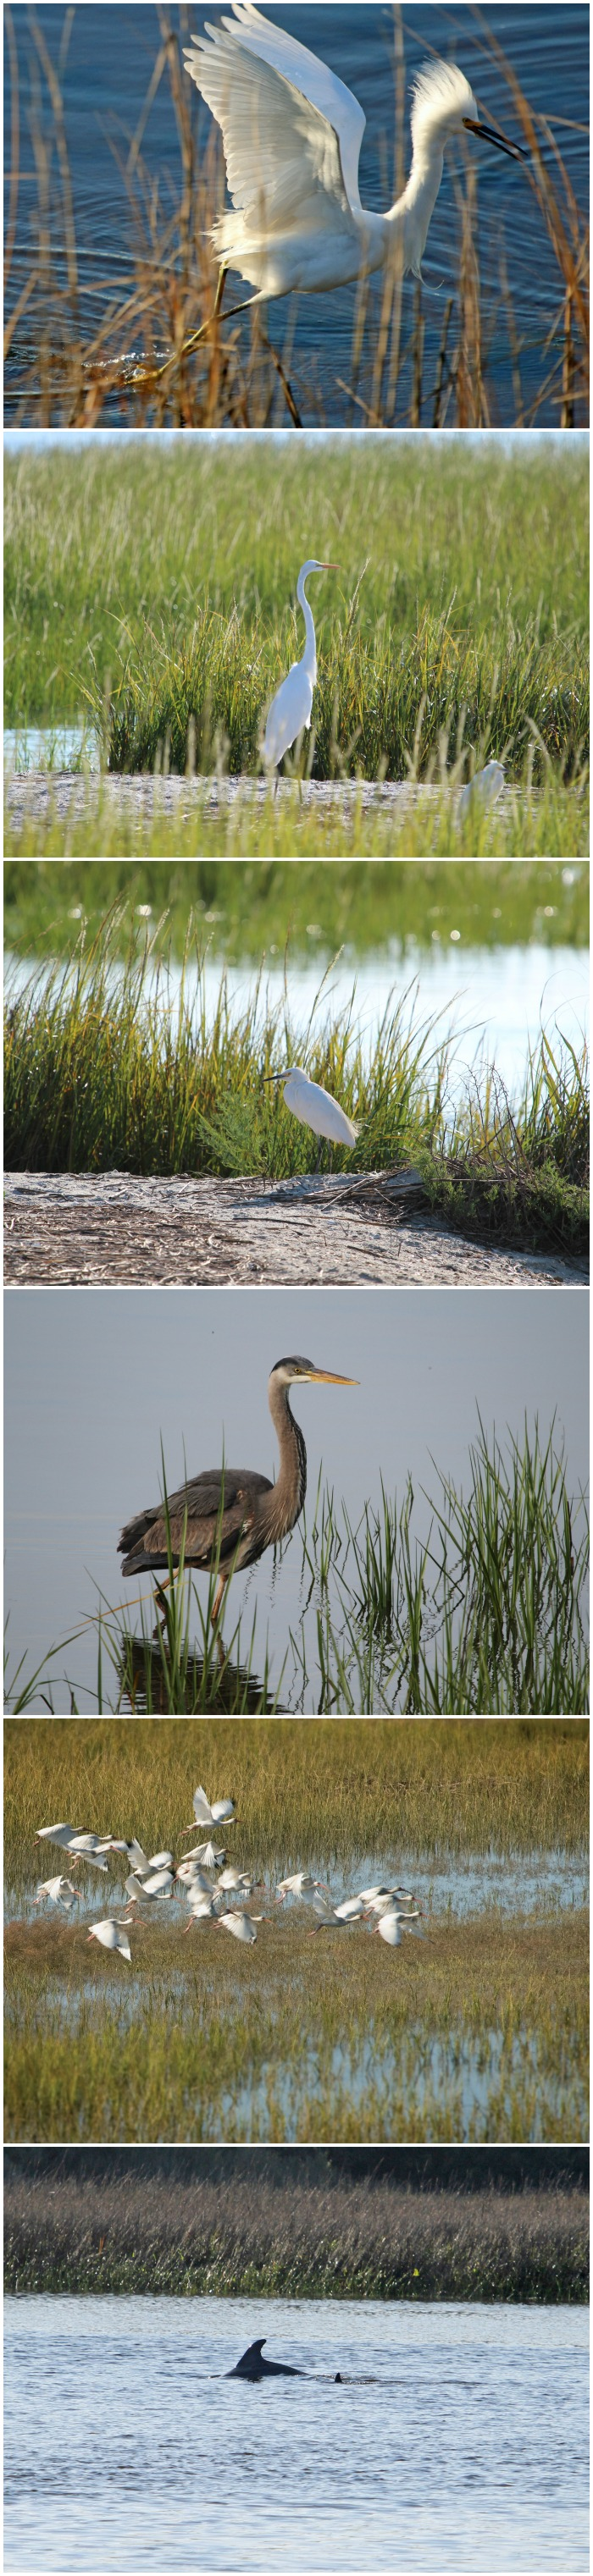 animals of the salt marsh - NCBI